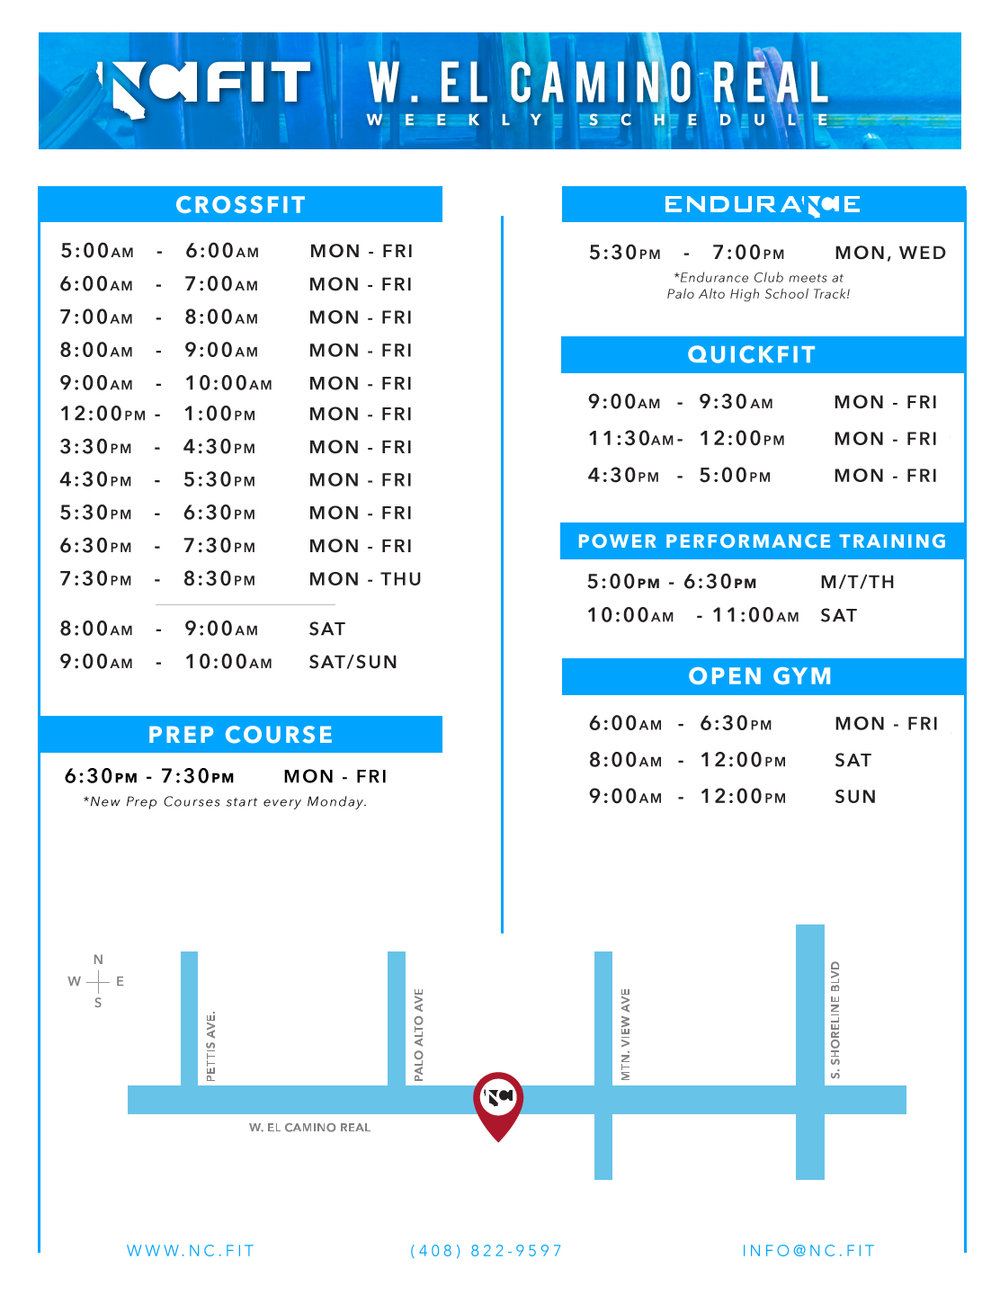 CLICK TO VIEW SCHEDULE